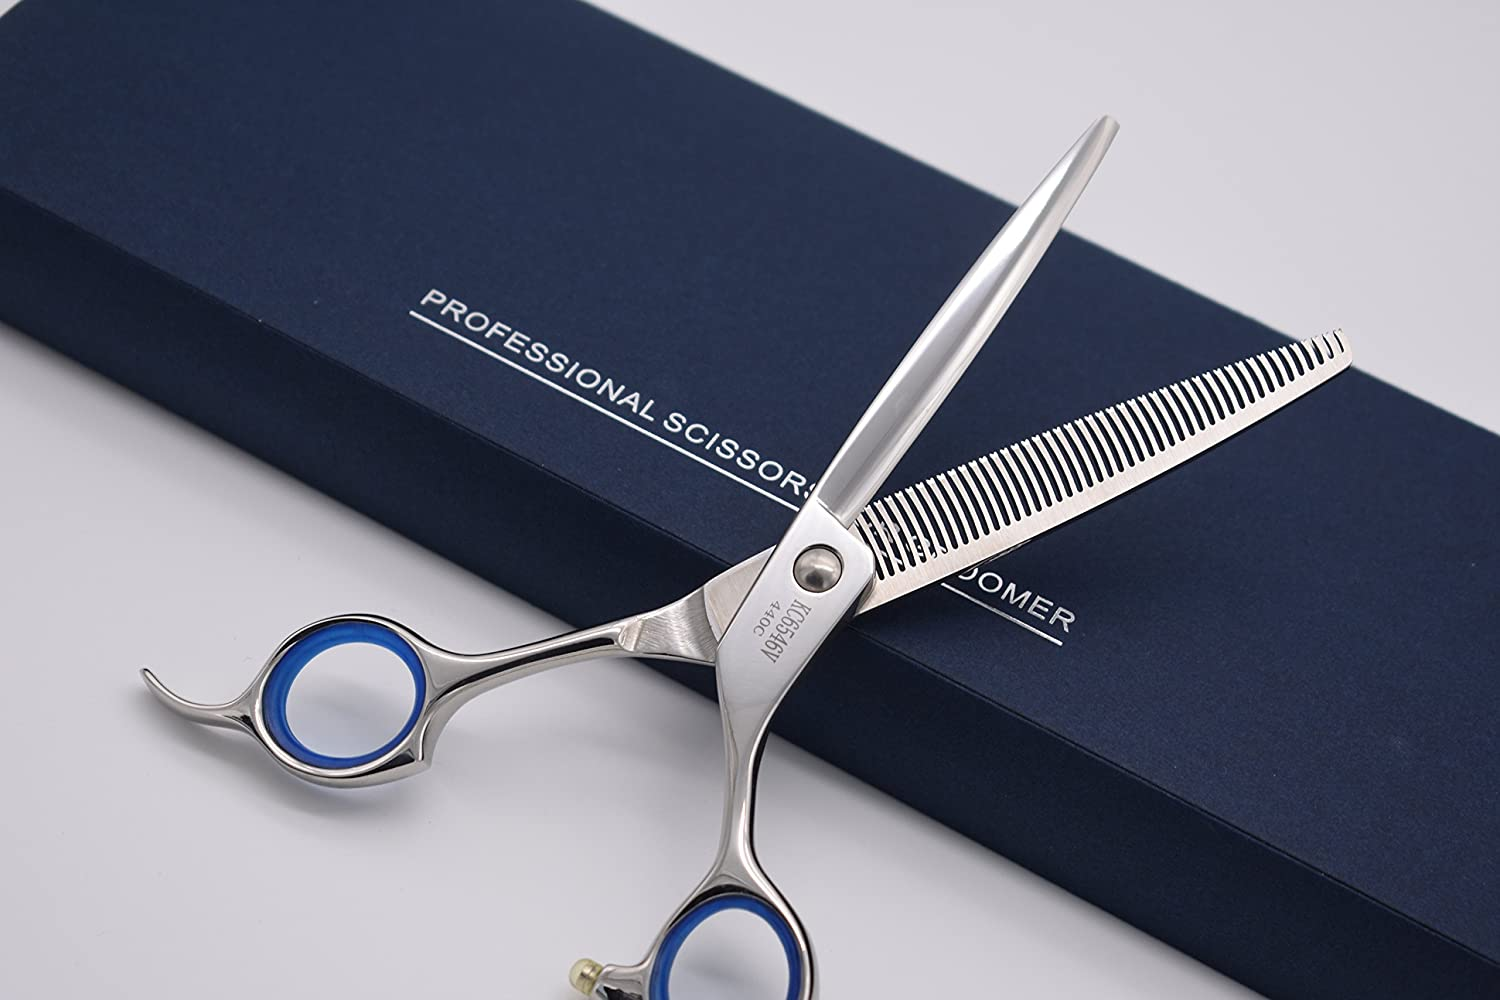 b9d15e09ddcf ... kko Professional Dog Grooming Shear Scissors 440C Stainless Steel  Japanese Process E-ONE HAIR PRODUCTS ...